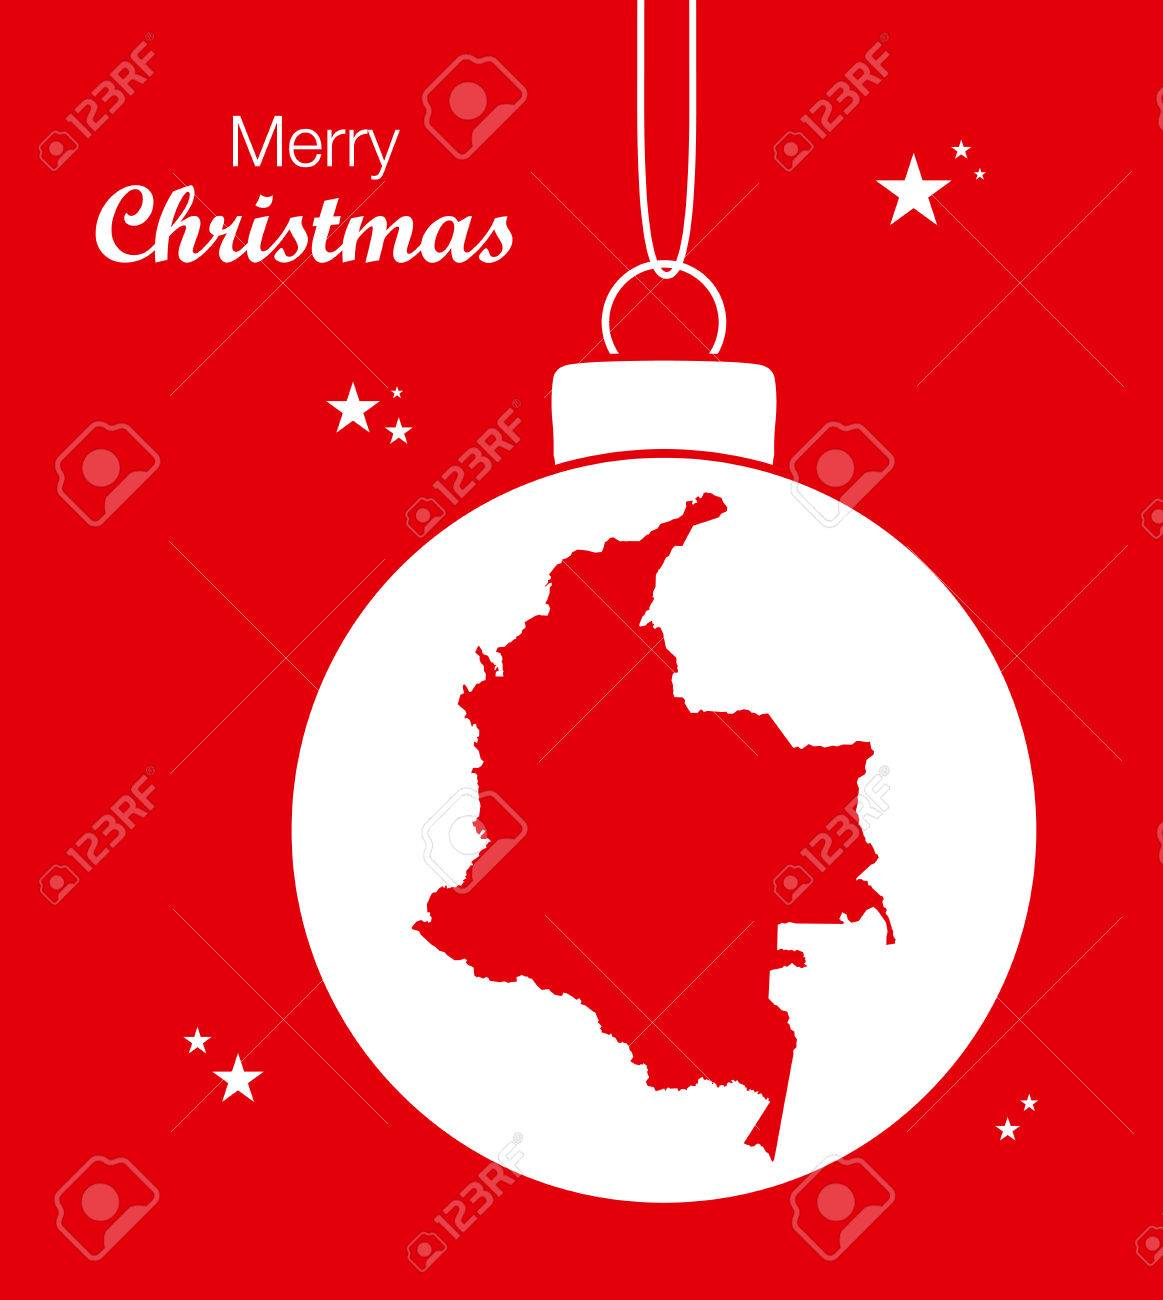 Christmas In Colombia.Merry Christmas Map Colombia